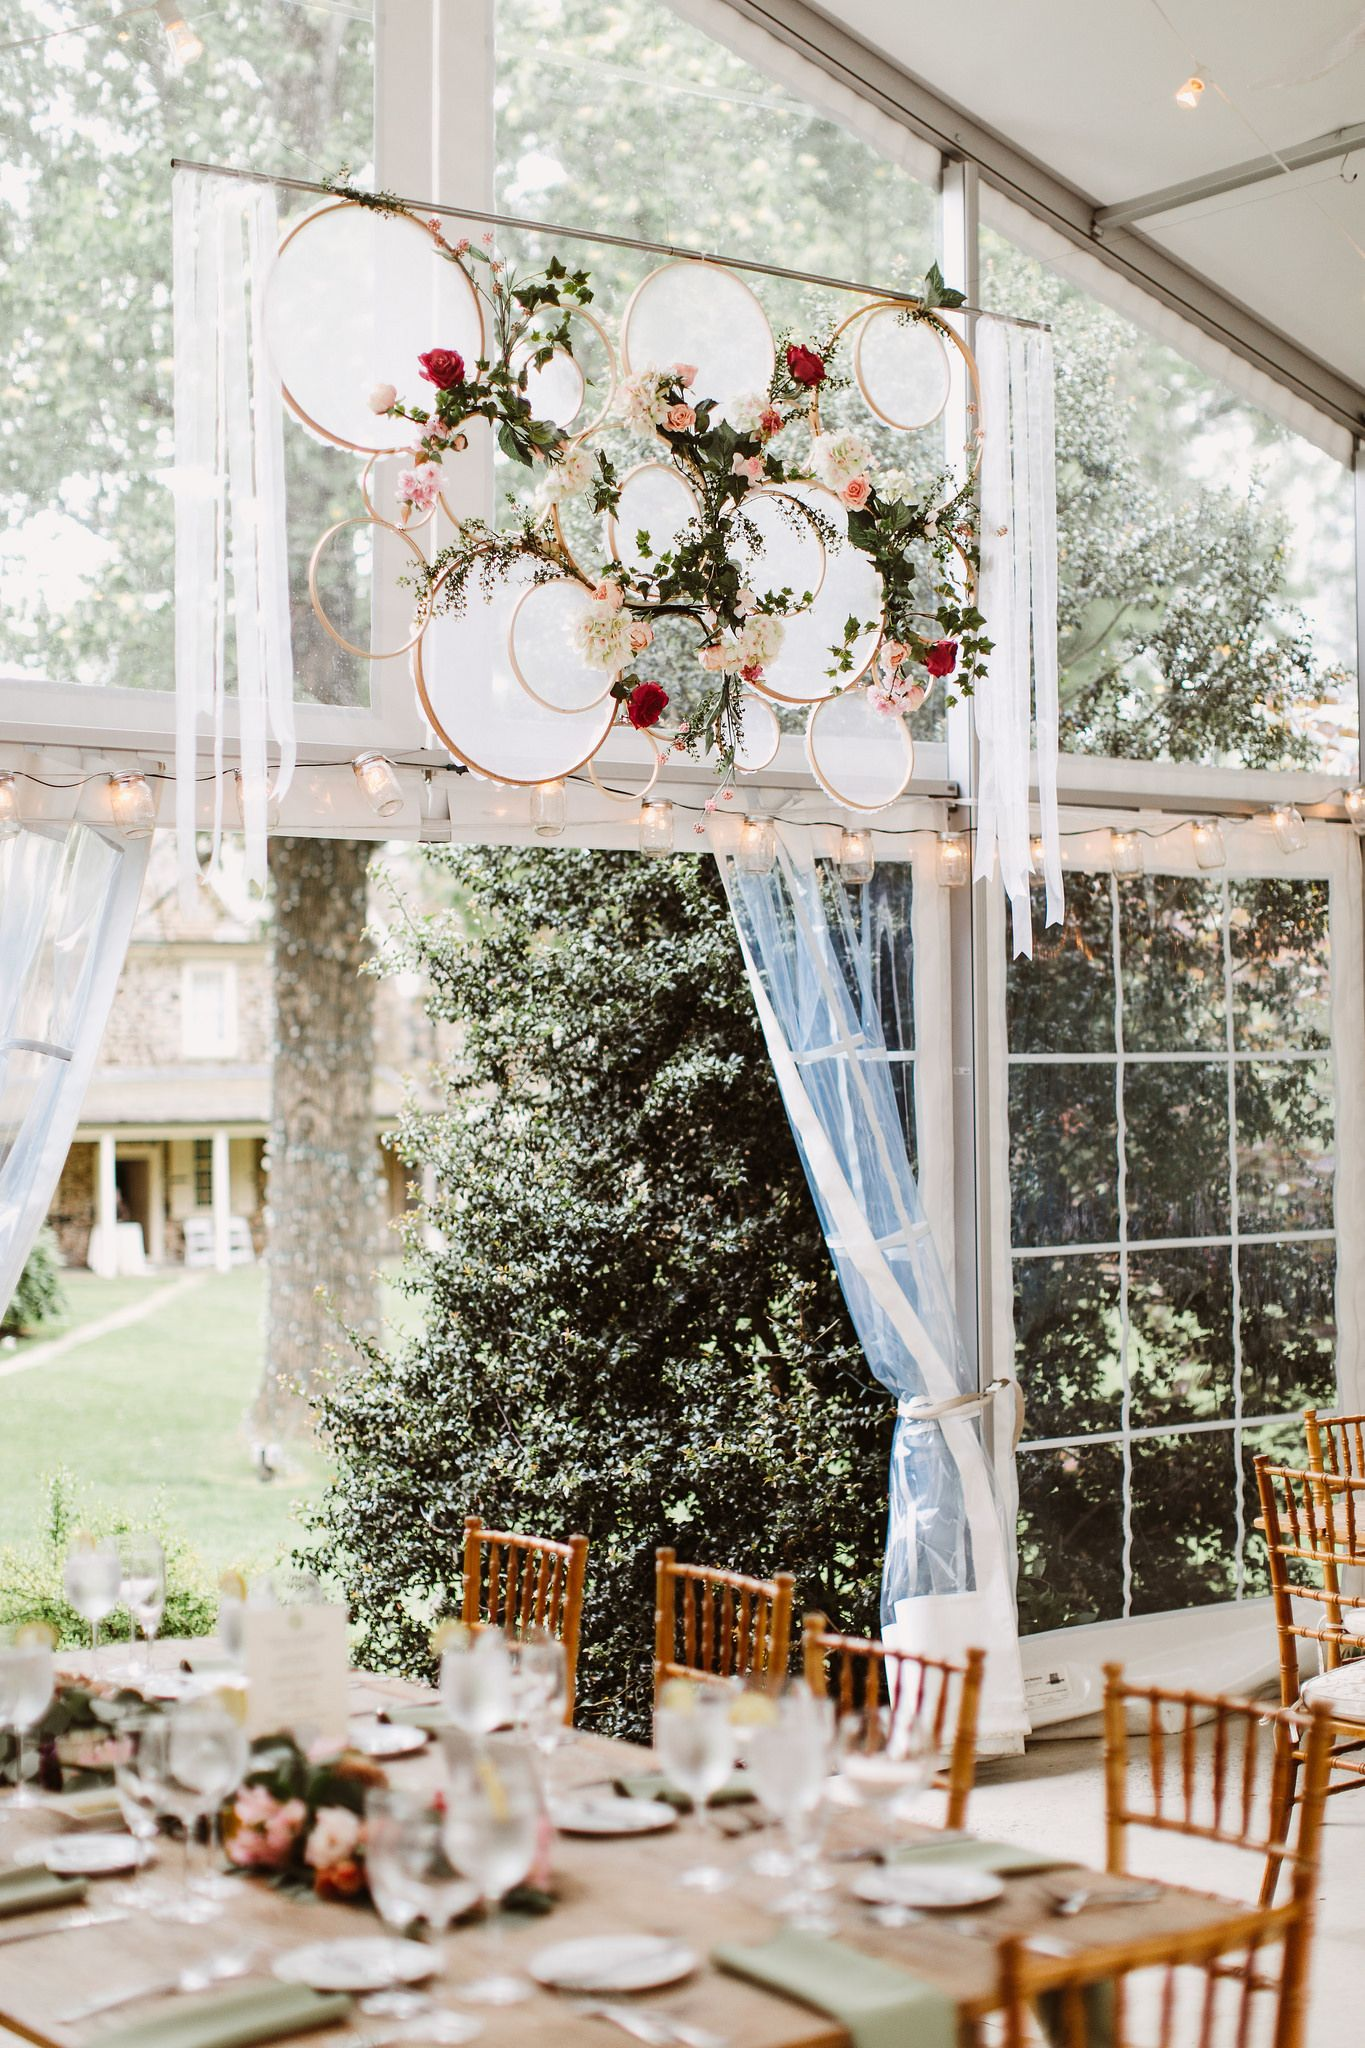 Katie Mike At Anthony Wayne House By Buttercup Pat Furey Photography Philadelphia Wedding Venues Chester County Wedding Anthony Wayne